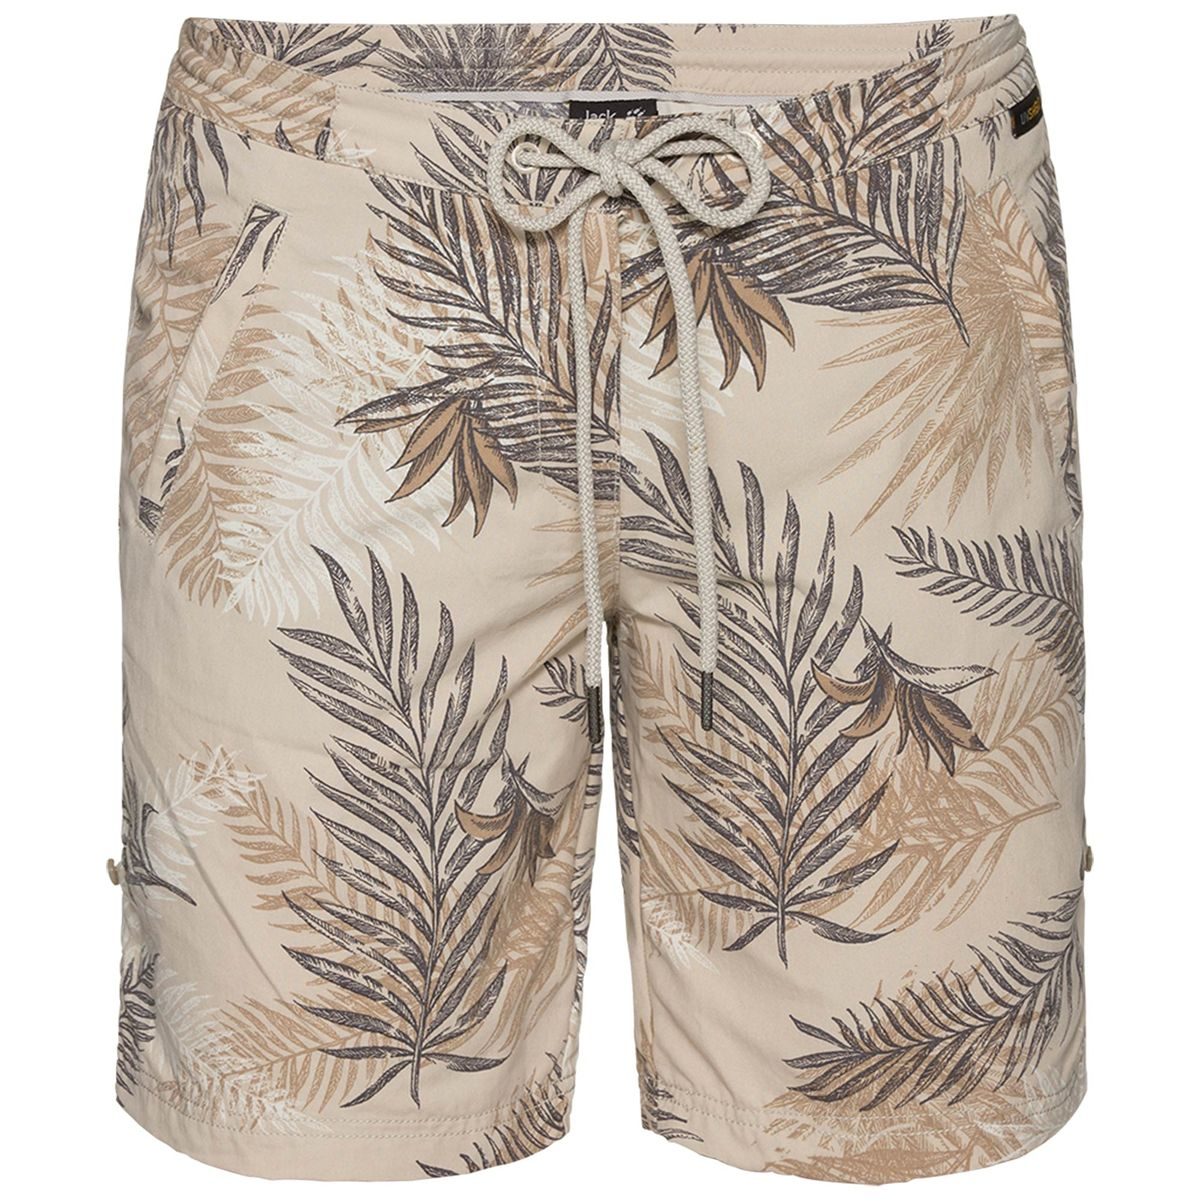 POMONA PALM SHORTS for women